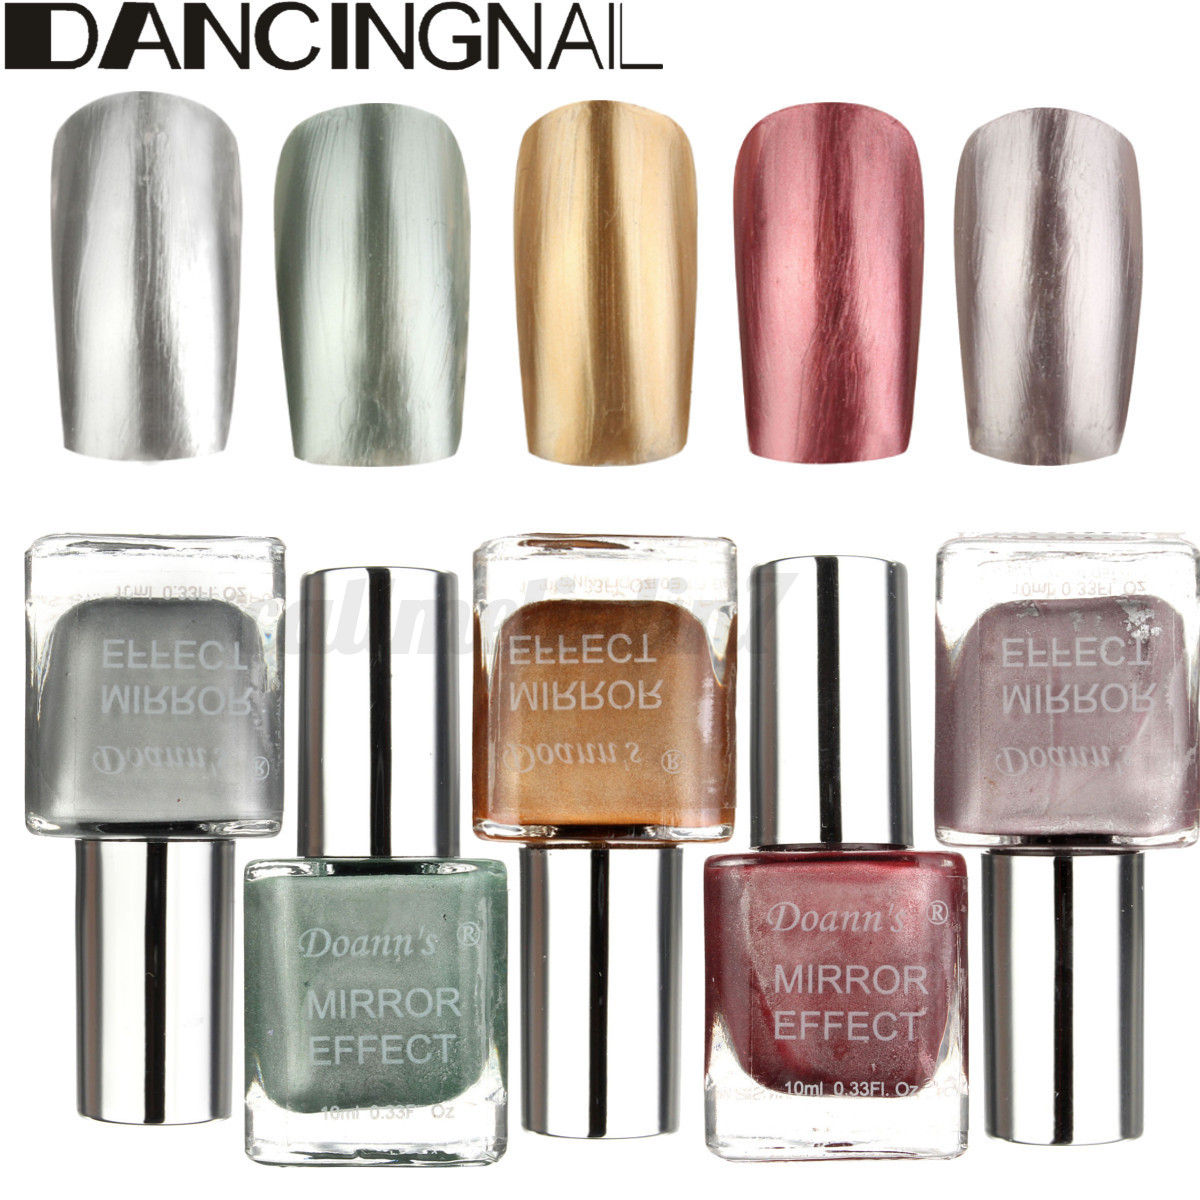 10ml miroir vernis ongles argent soak off semi for Vernis a ongle miroir